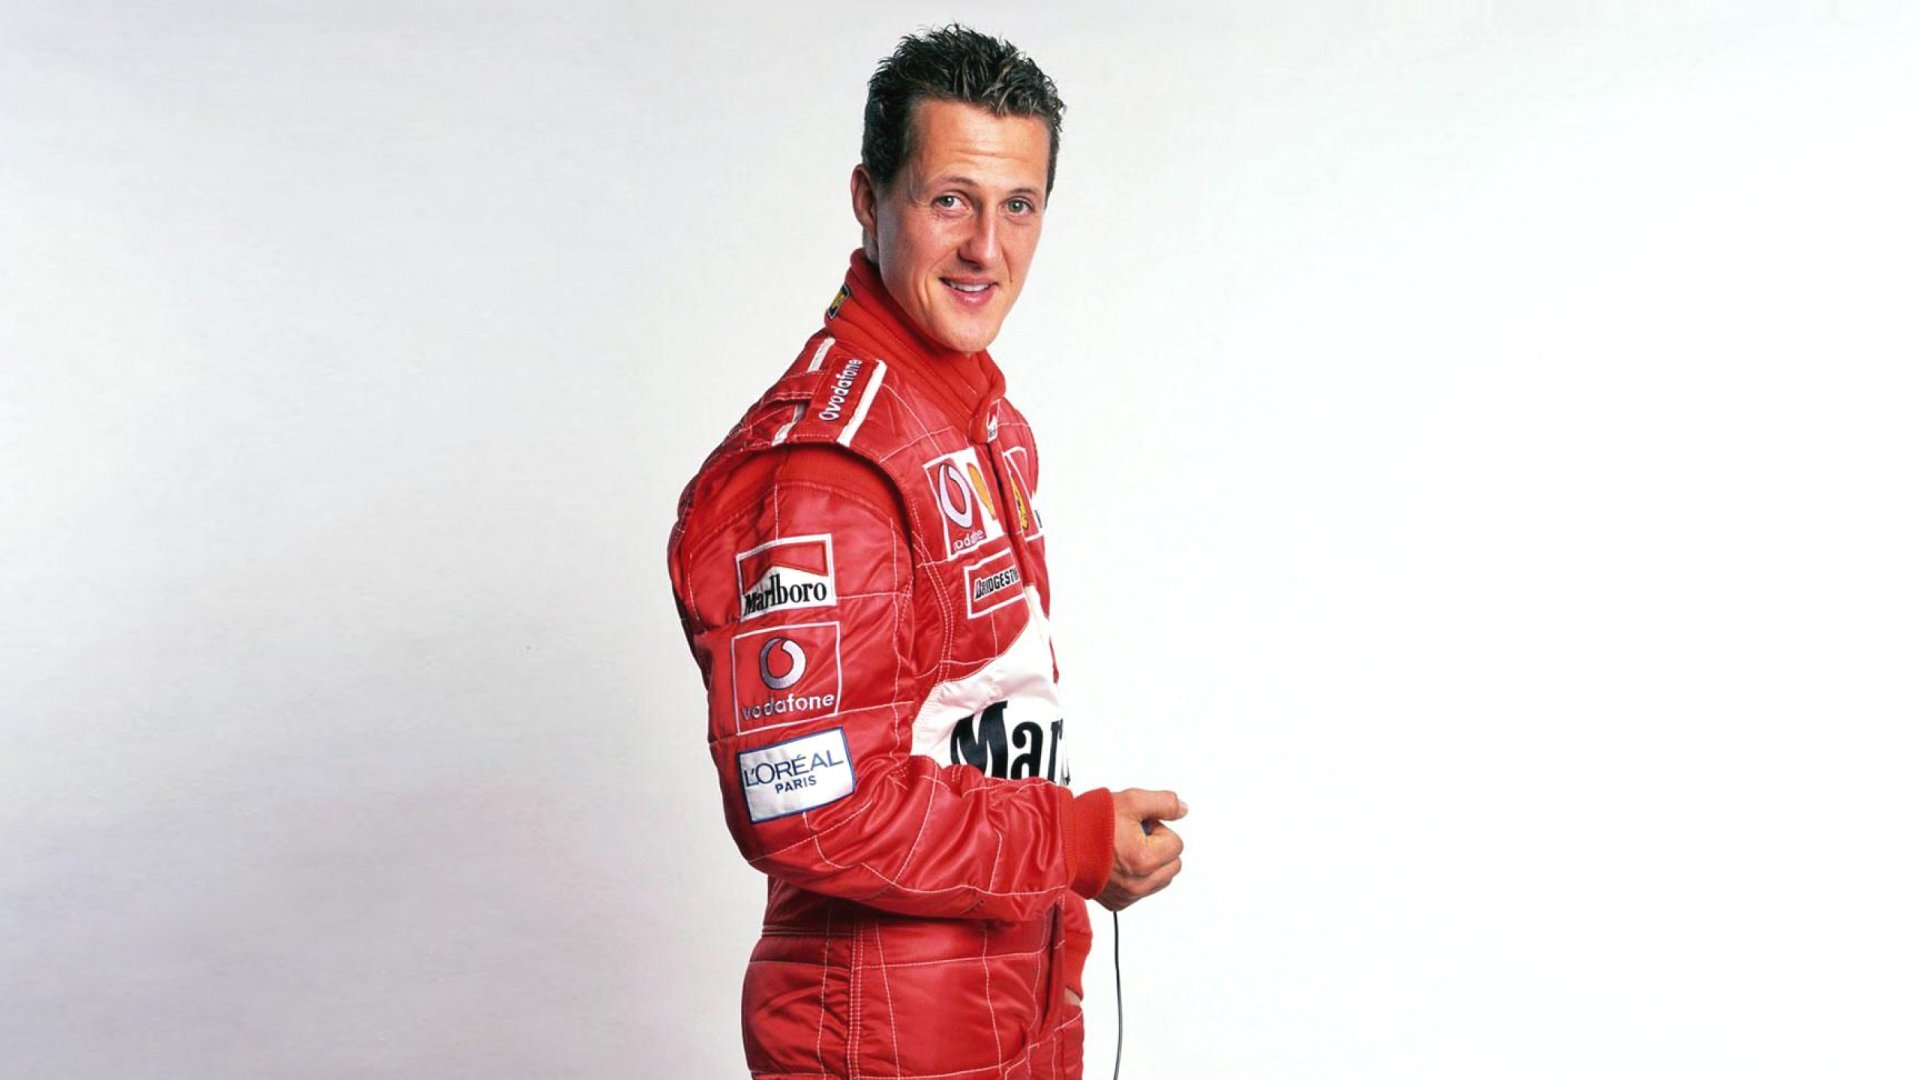 Is Michael Schumacher The Stig poster